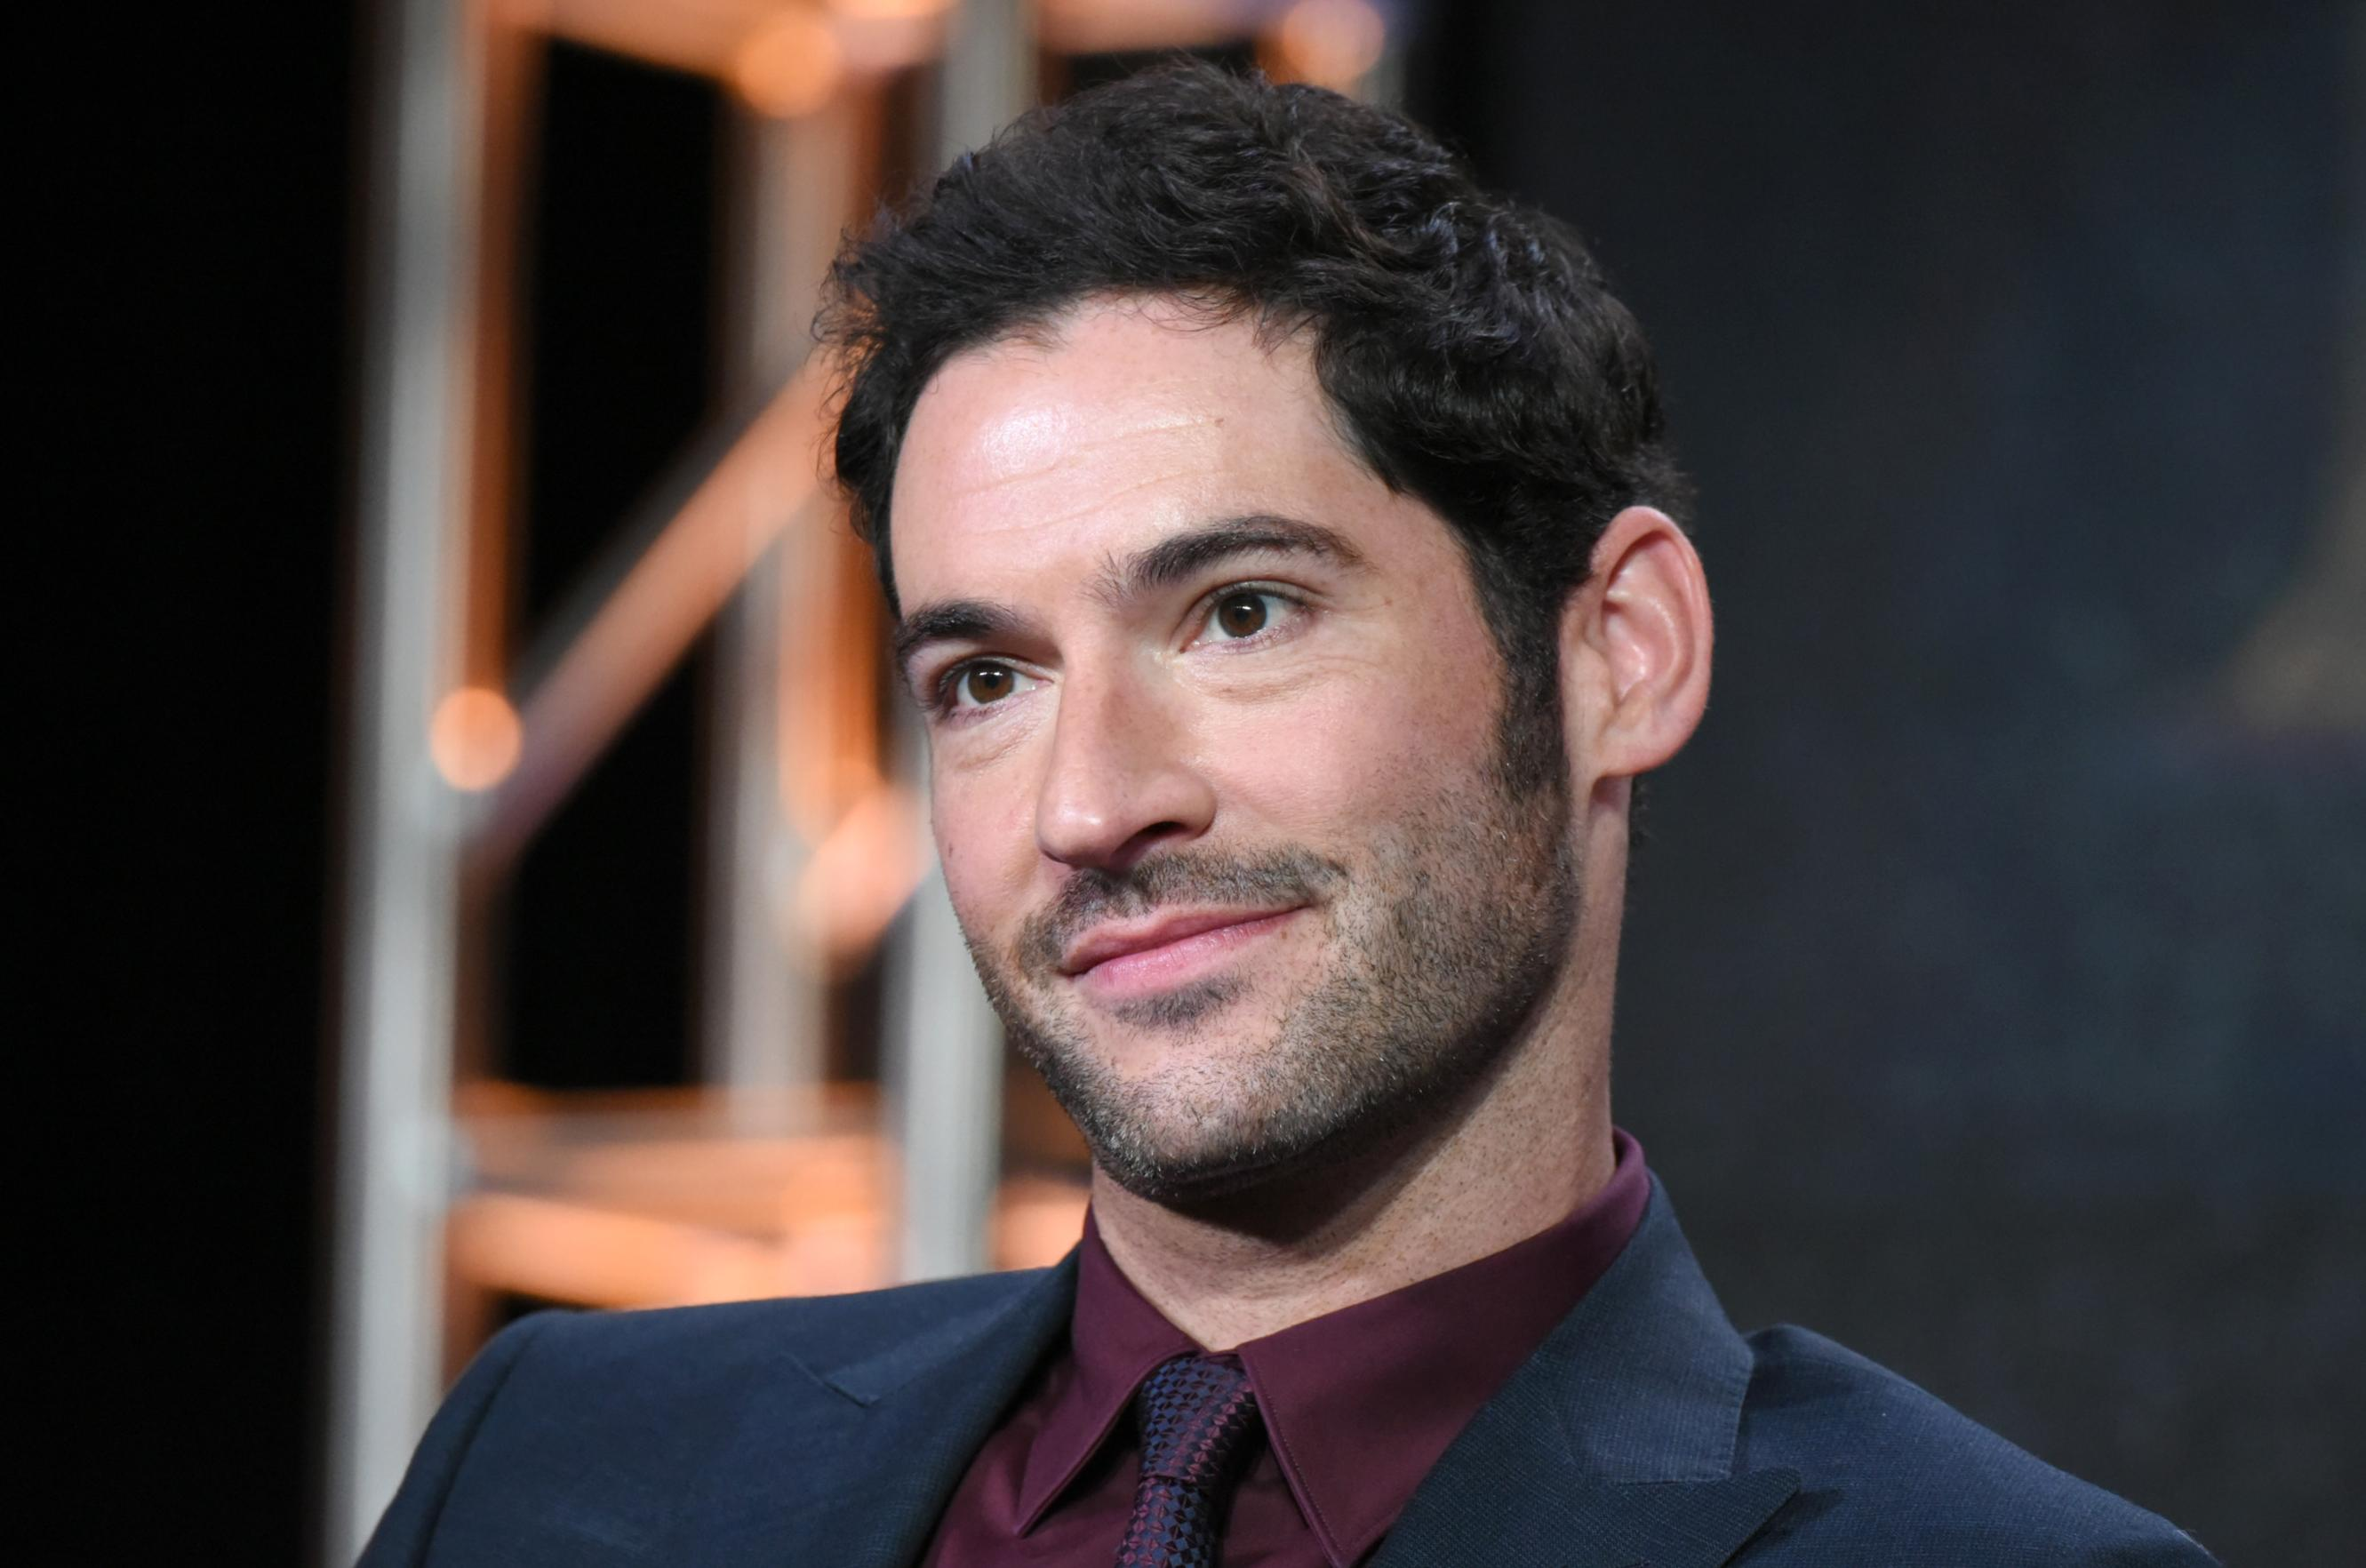 Tom Ellis relishes role on 'Lucifer' | The Spokesman-Review